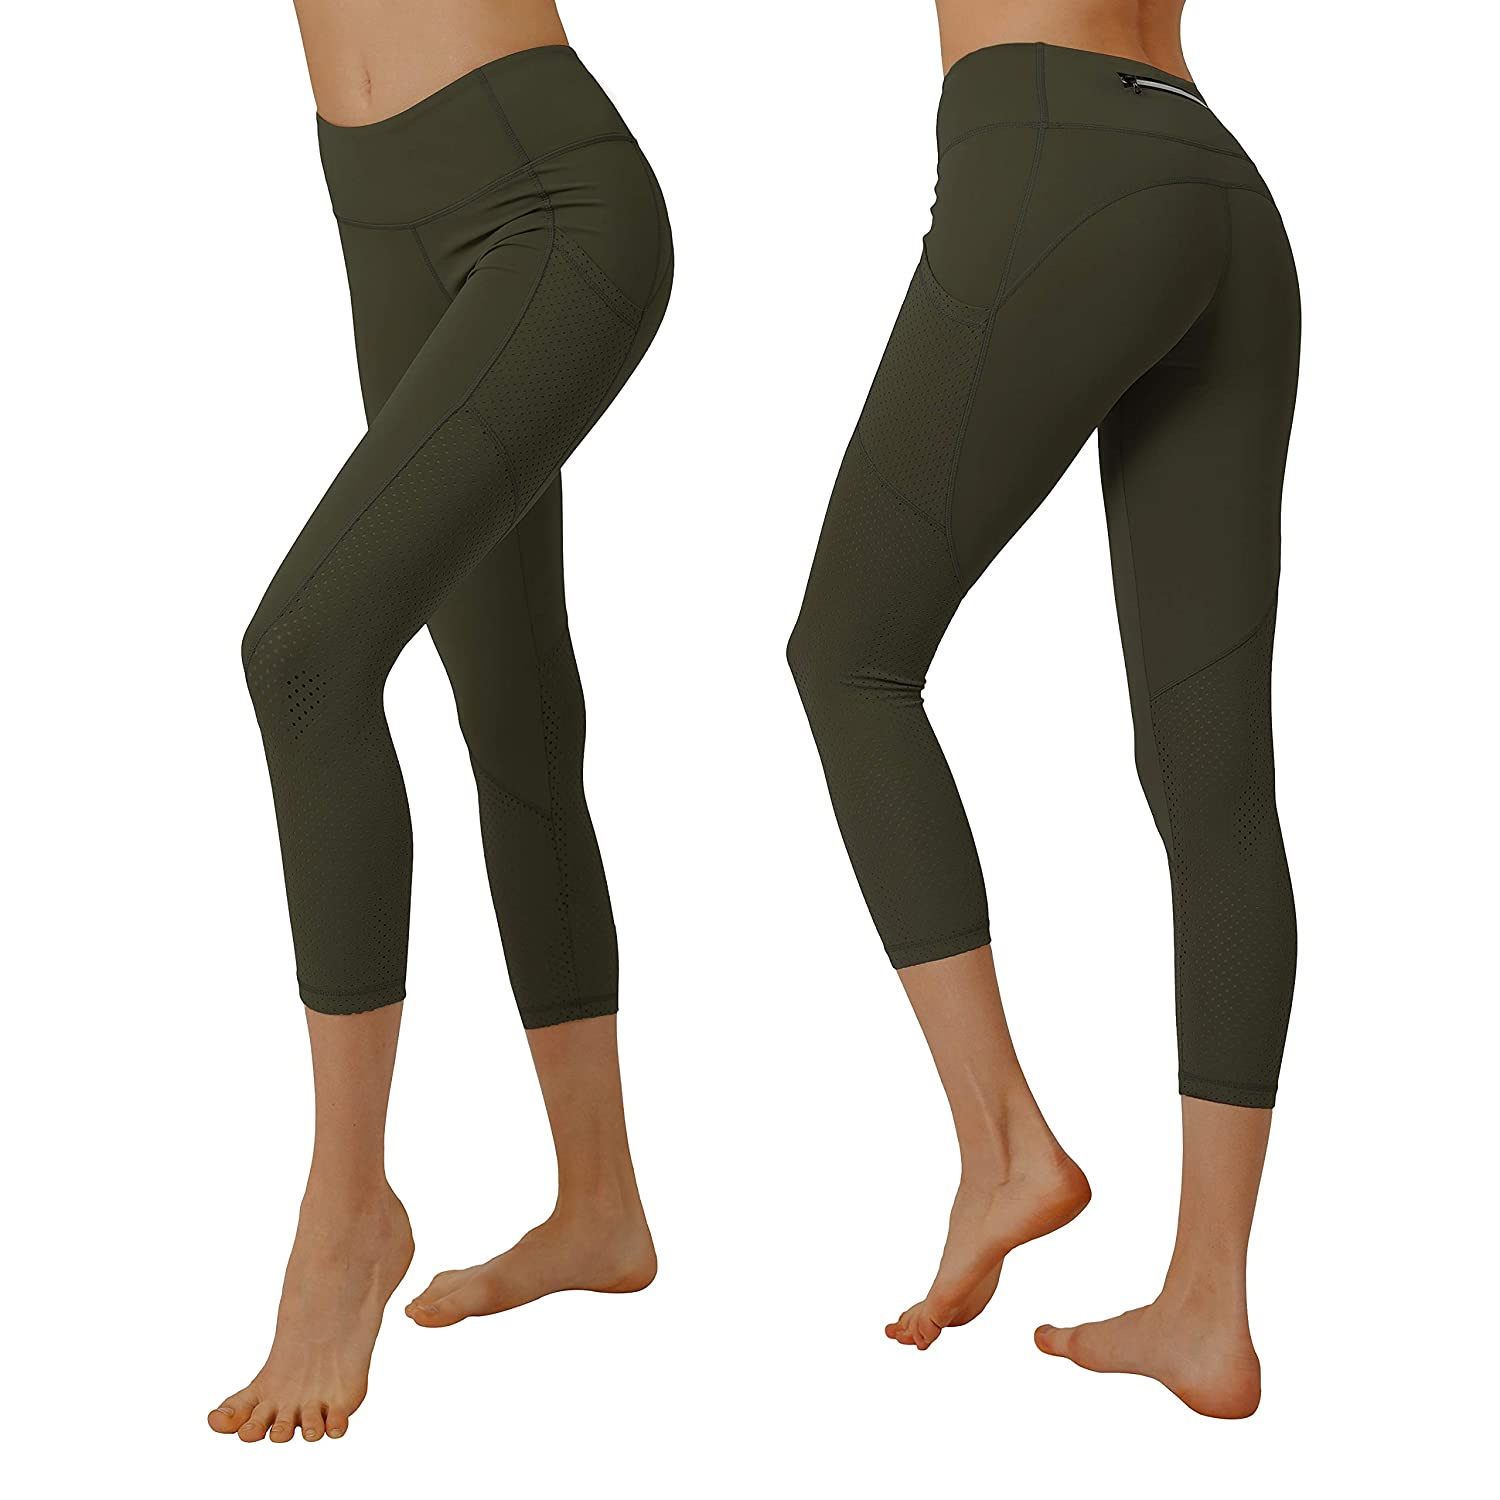 Dark Olive Cityoung Women's High Waist Power Flex Yoga Capri Legging Tummy Control Workout Running Pants with Pockets